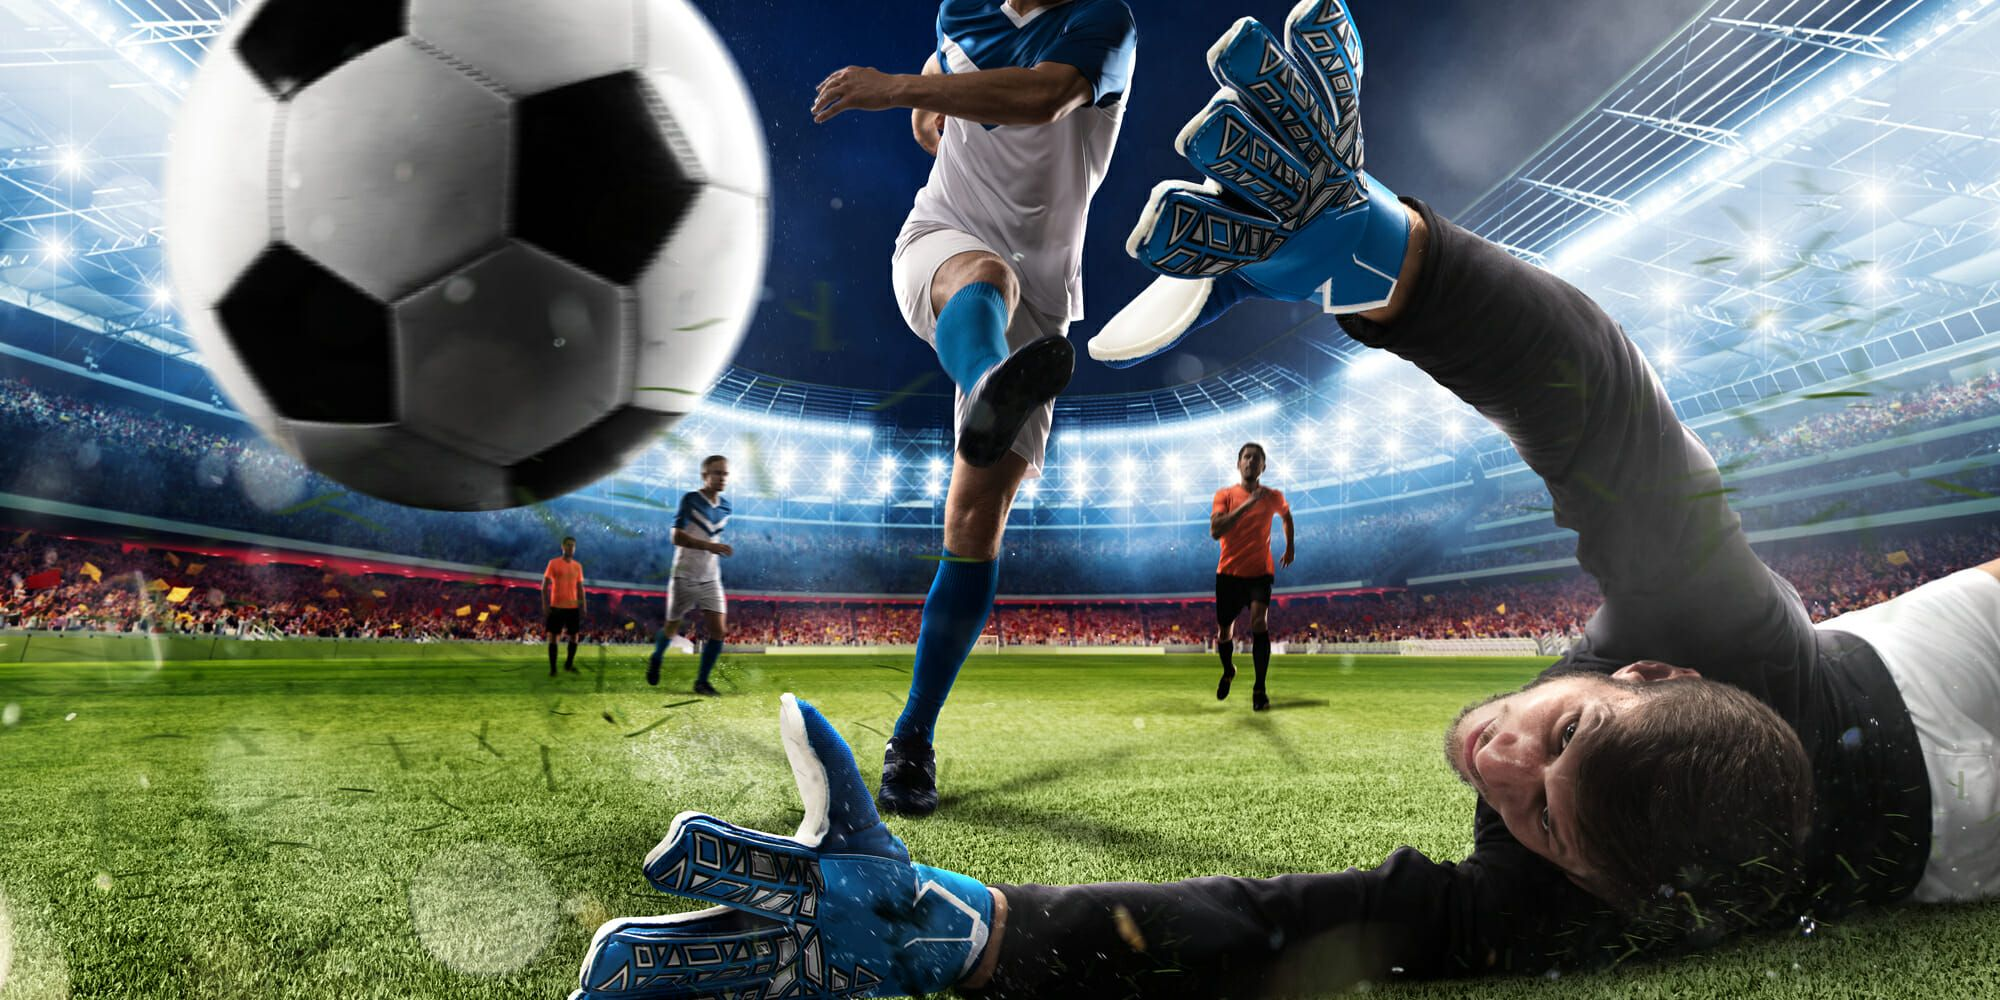 Most Popular Sports for Betting in Online Casino